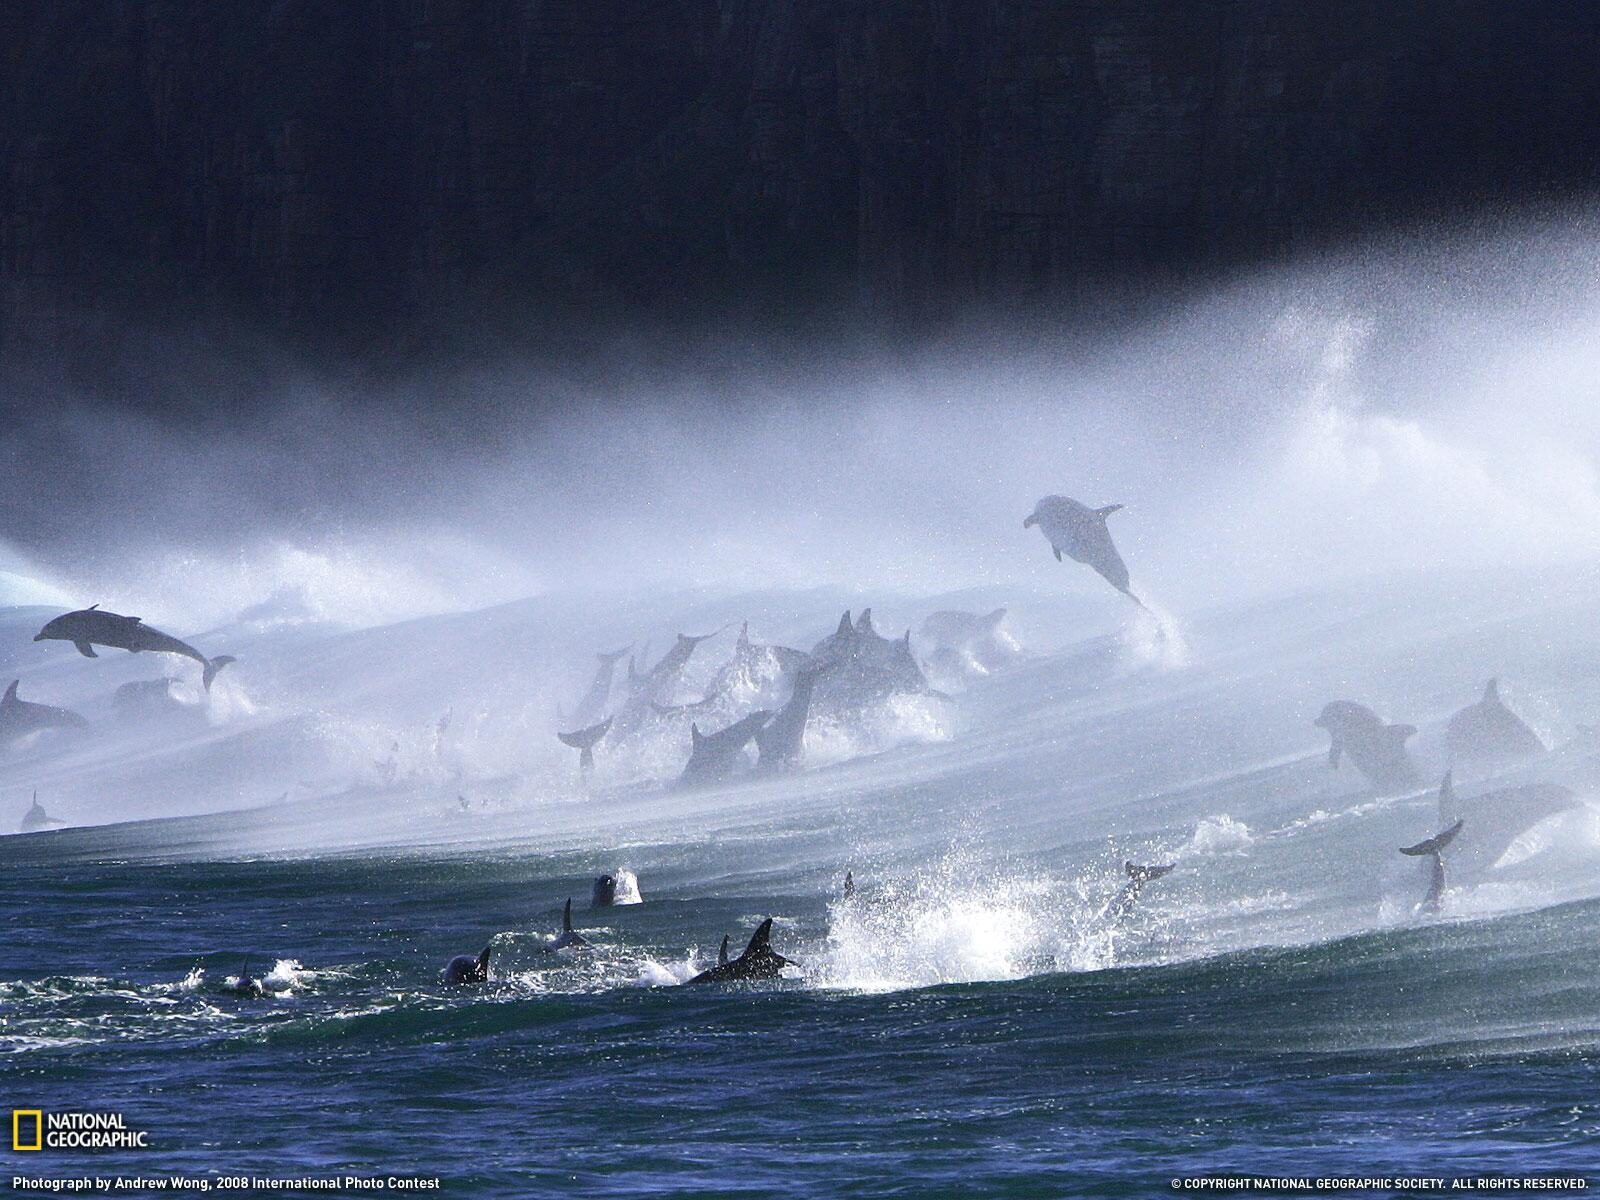 Pod of Bottlenose Dolphins Playing in the Waves http://t.co/nB575PaXbB